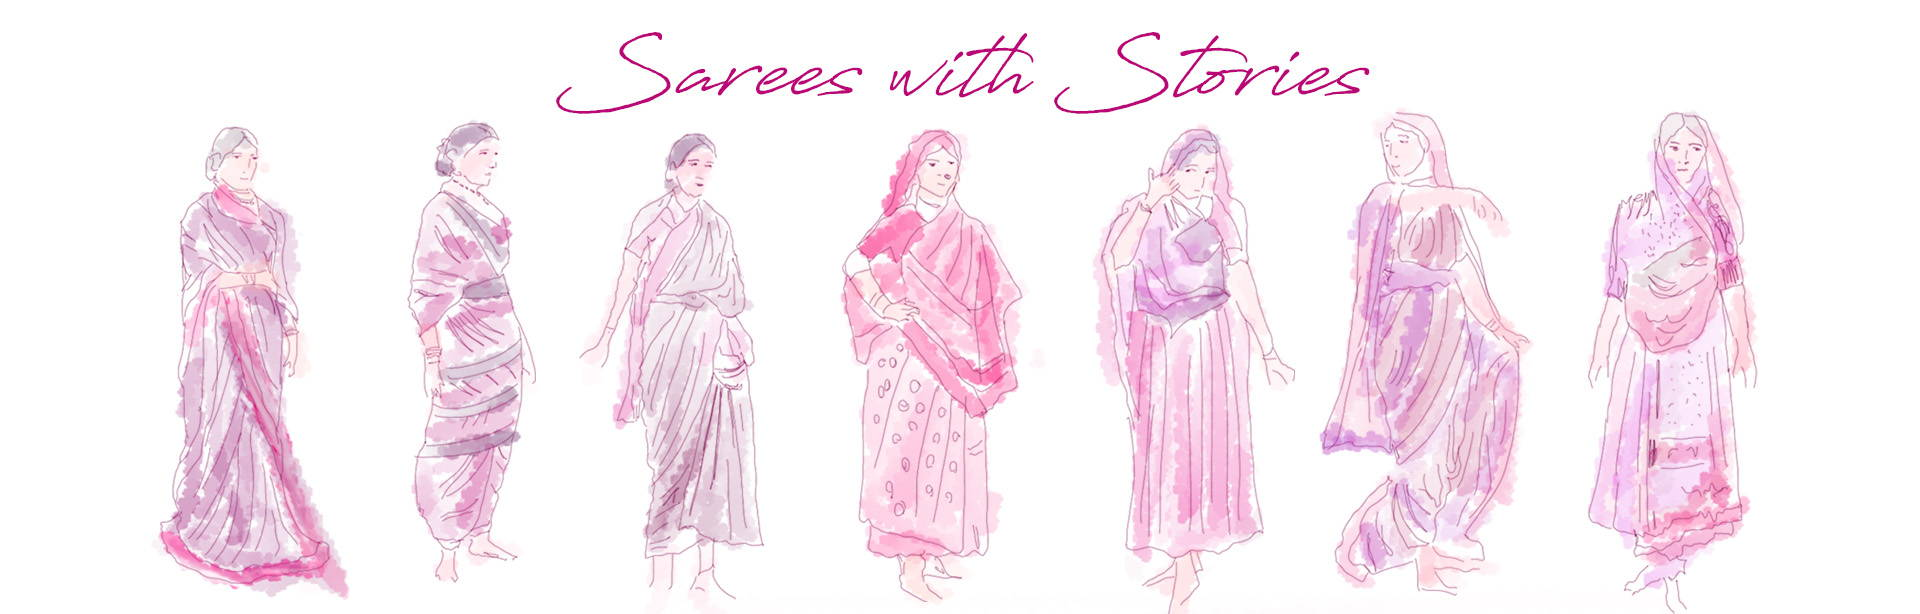 Sarees with Stories